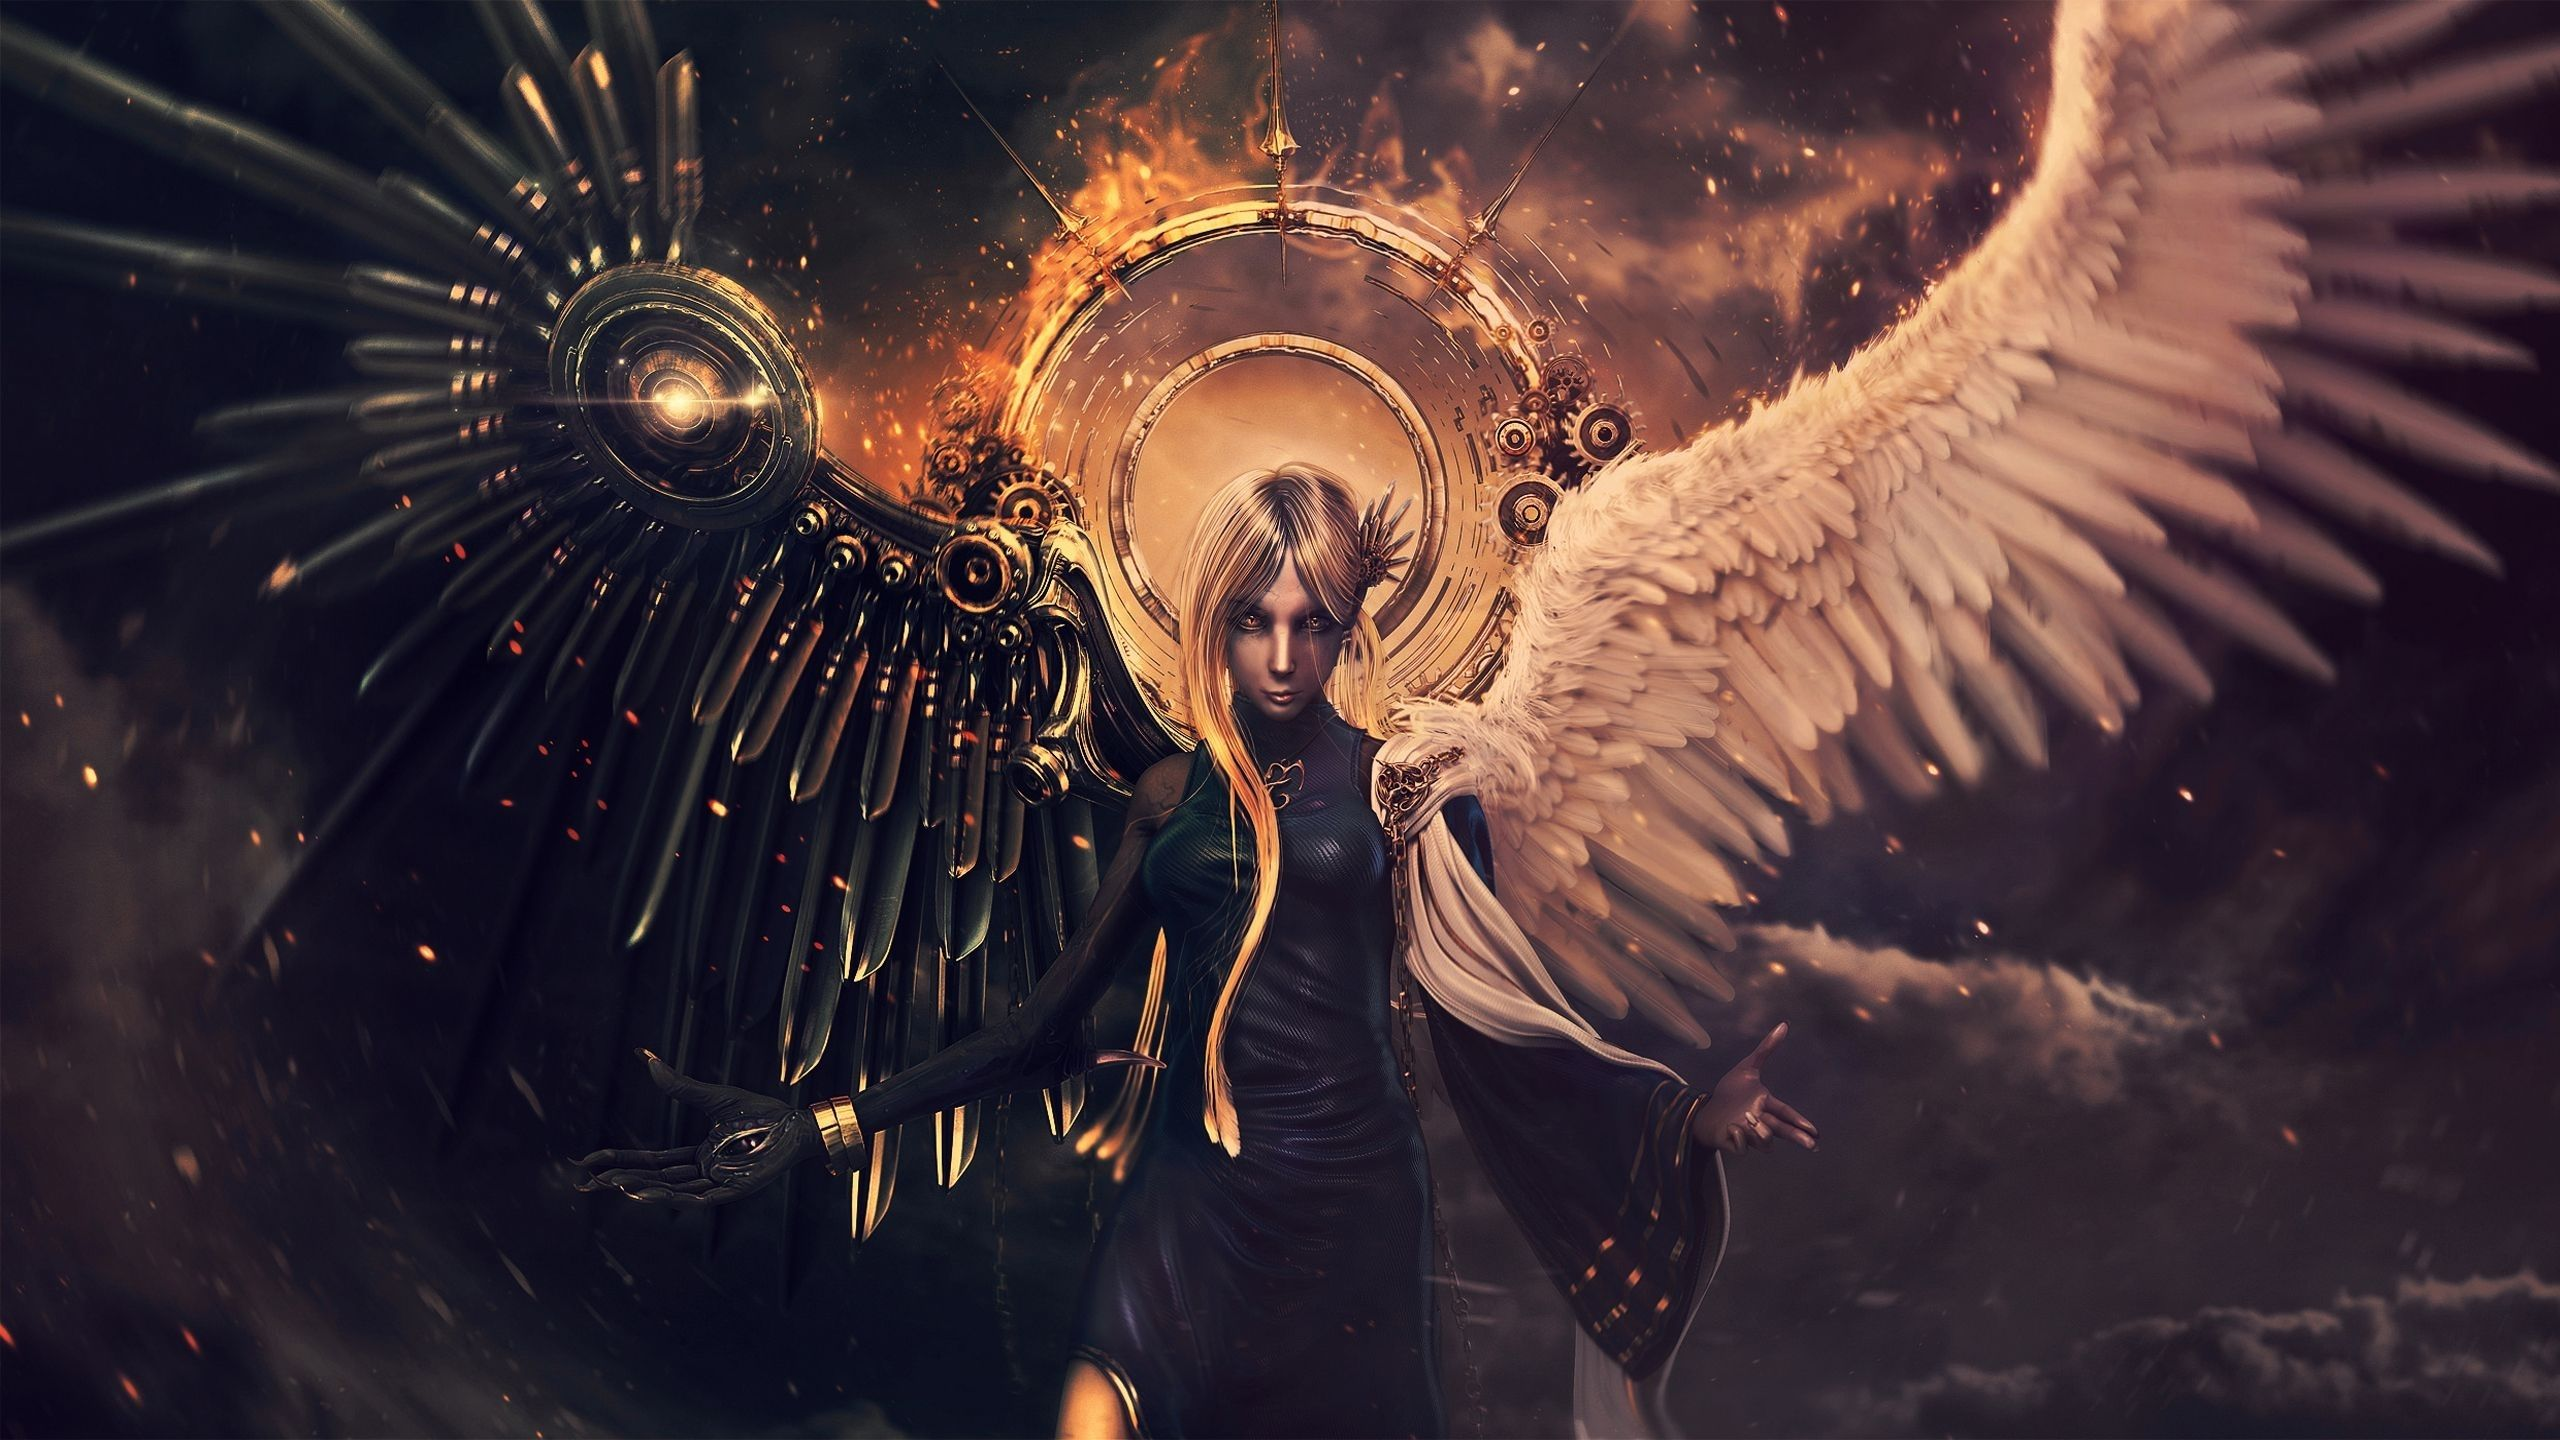 10 Top Angel And Demons Wallpaper FULL HD 1080p For PC